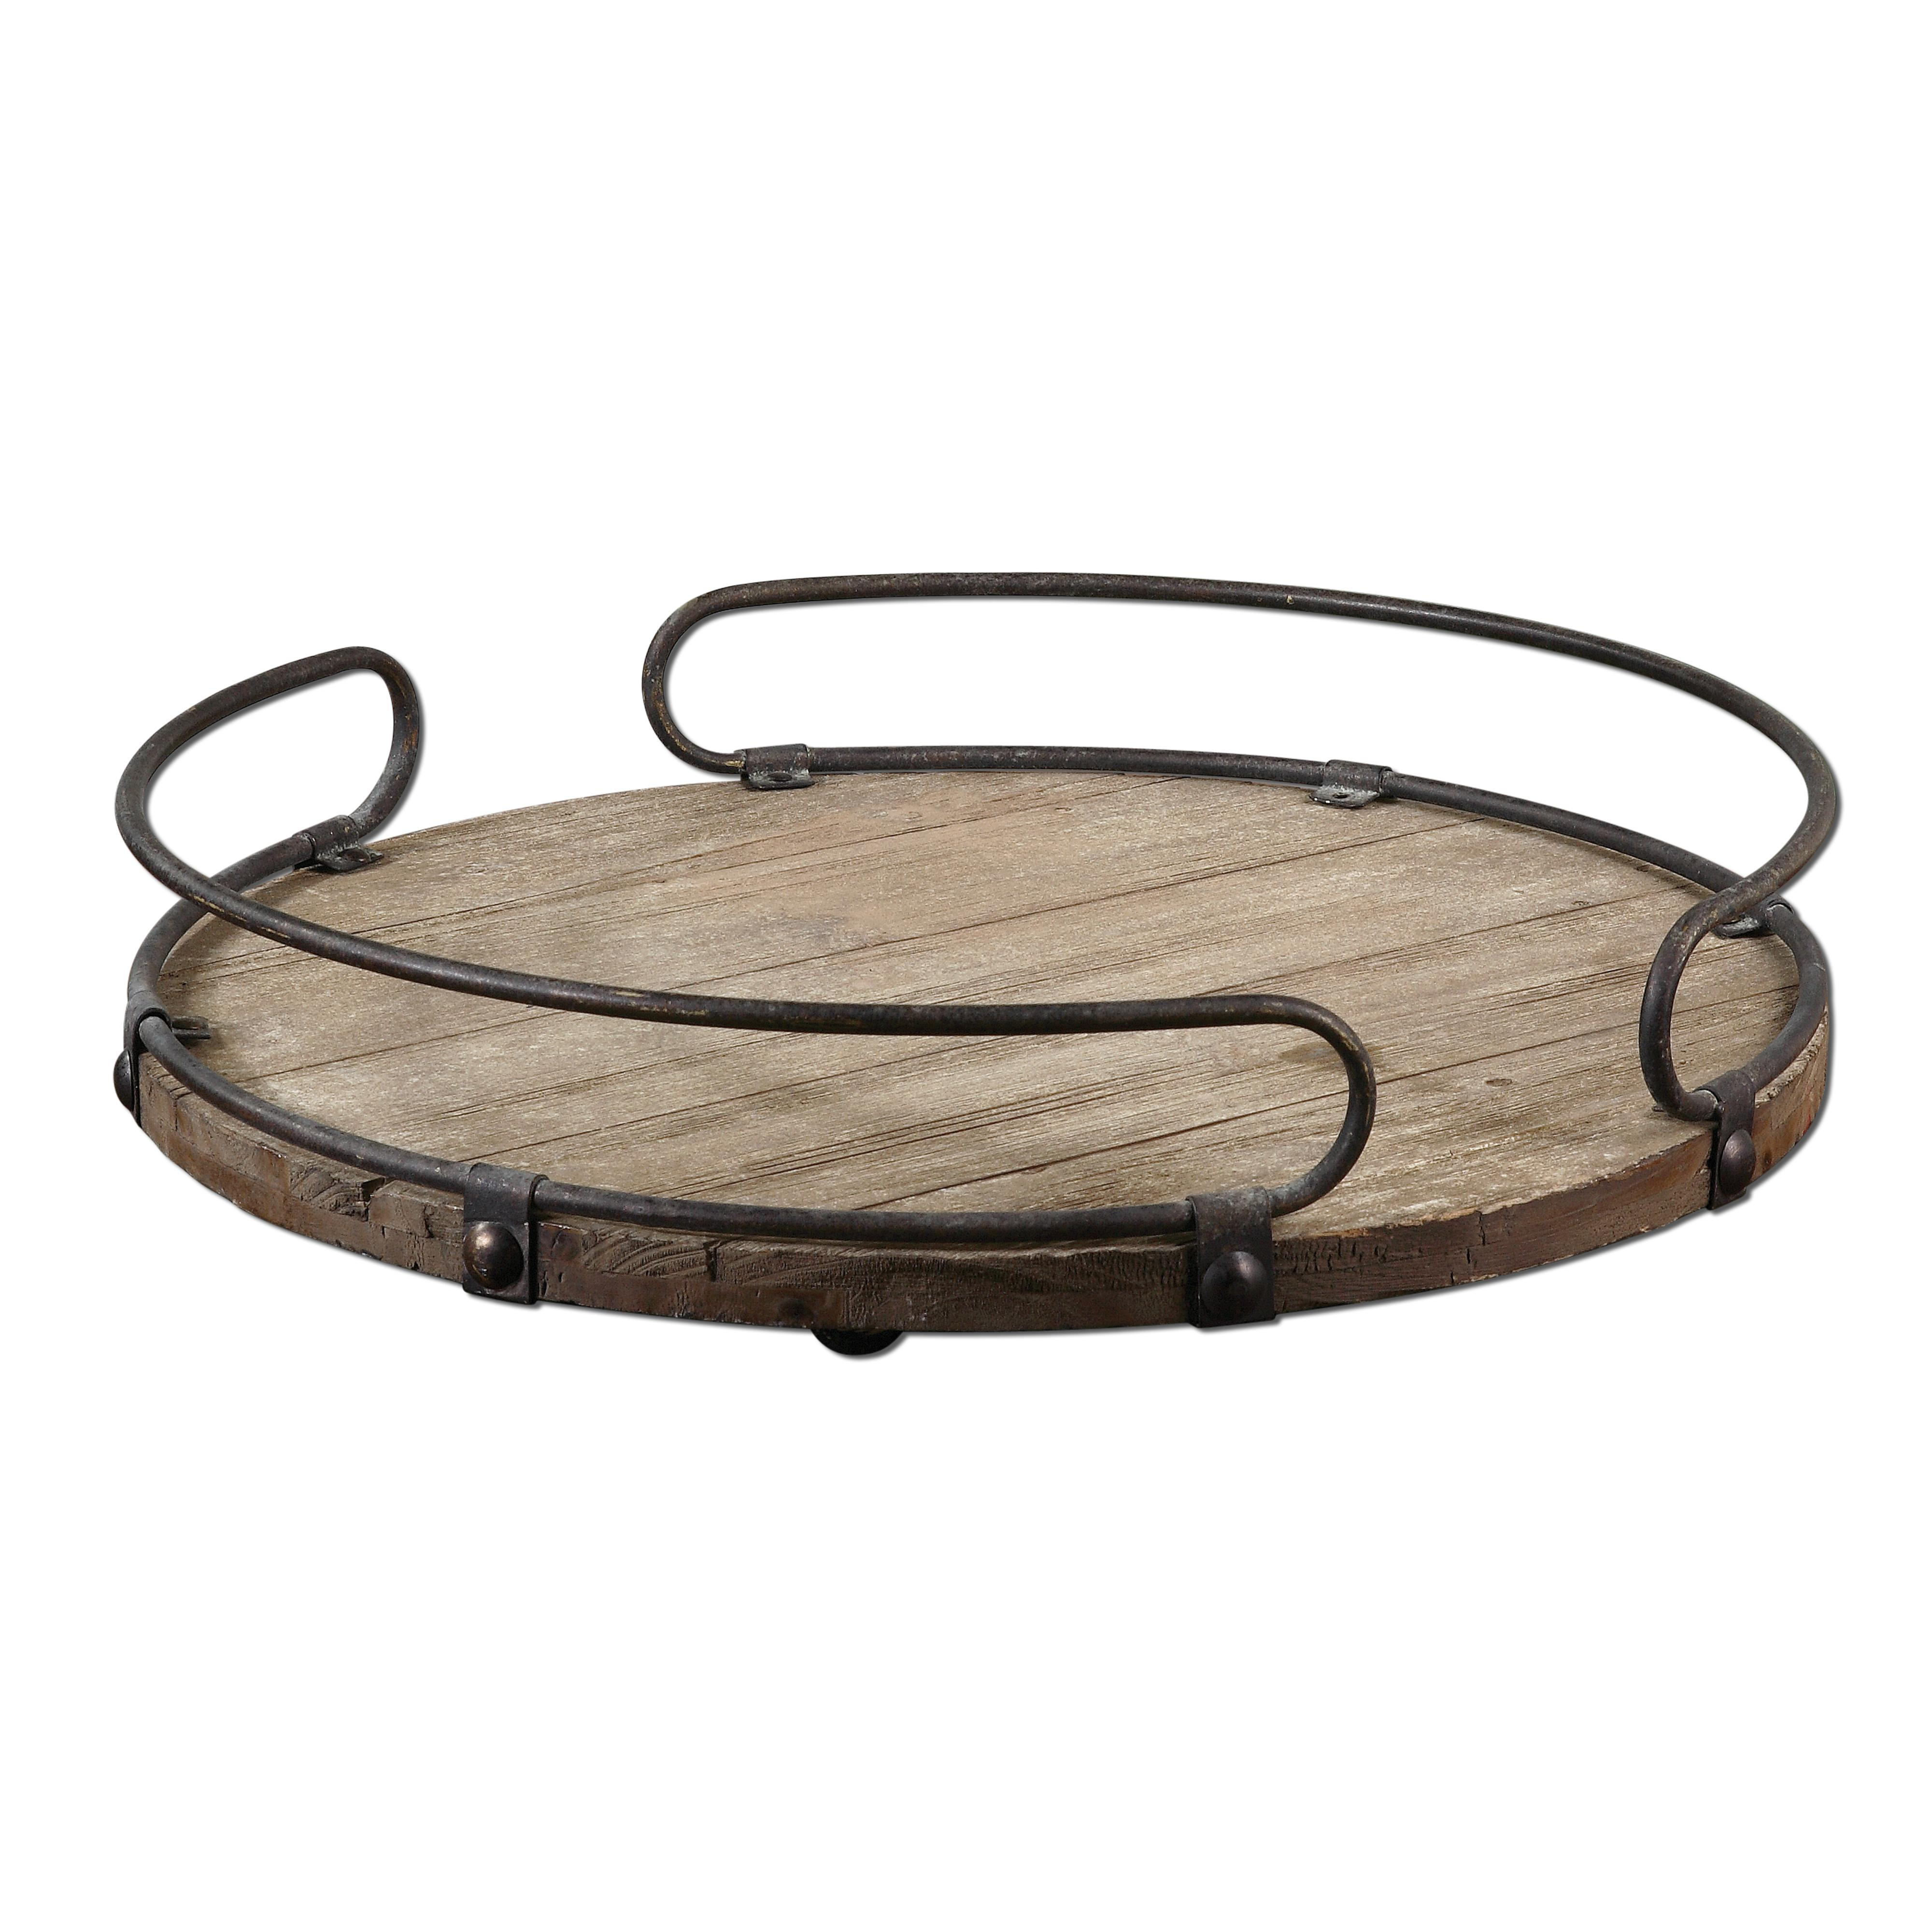 Uttermost Accessories Acela Tray - Item Number: 19727